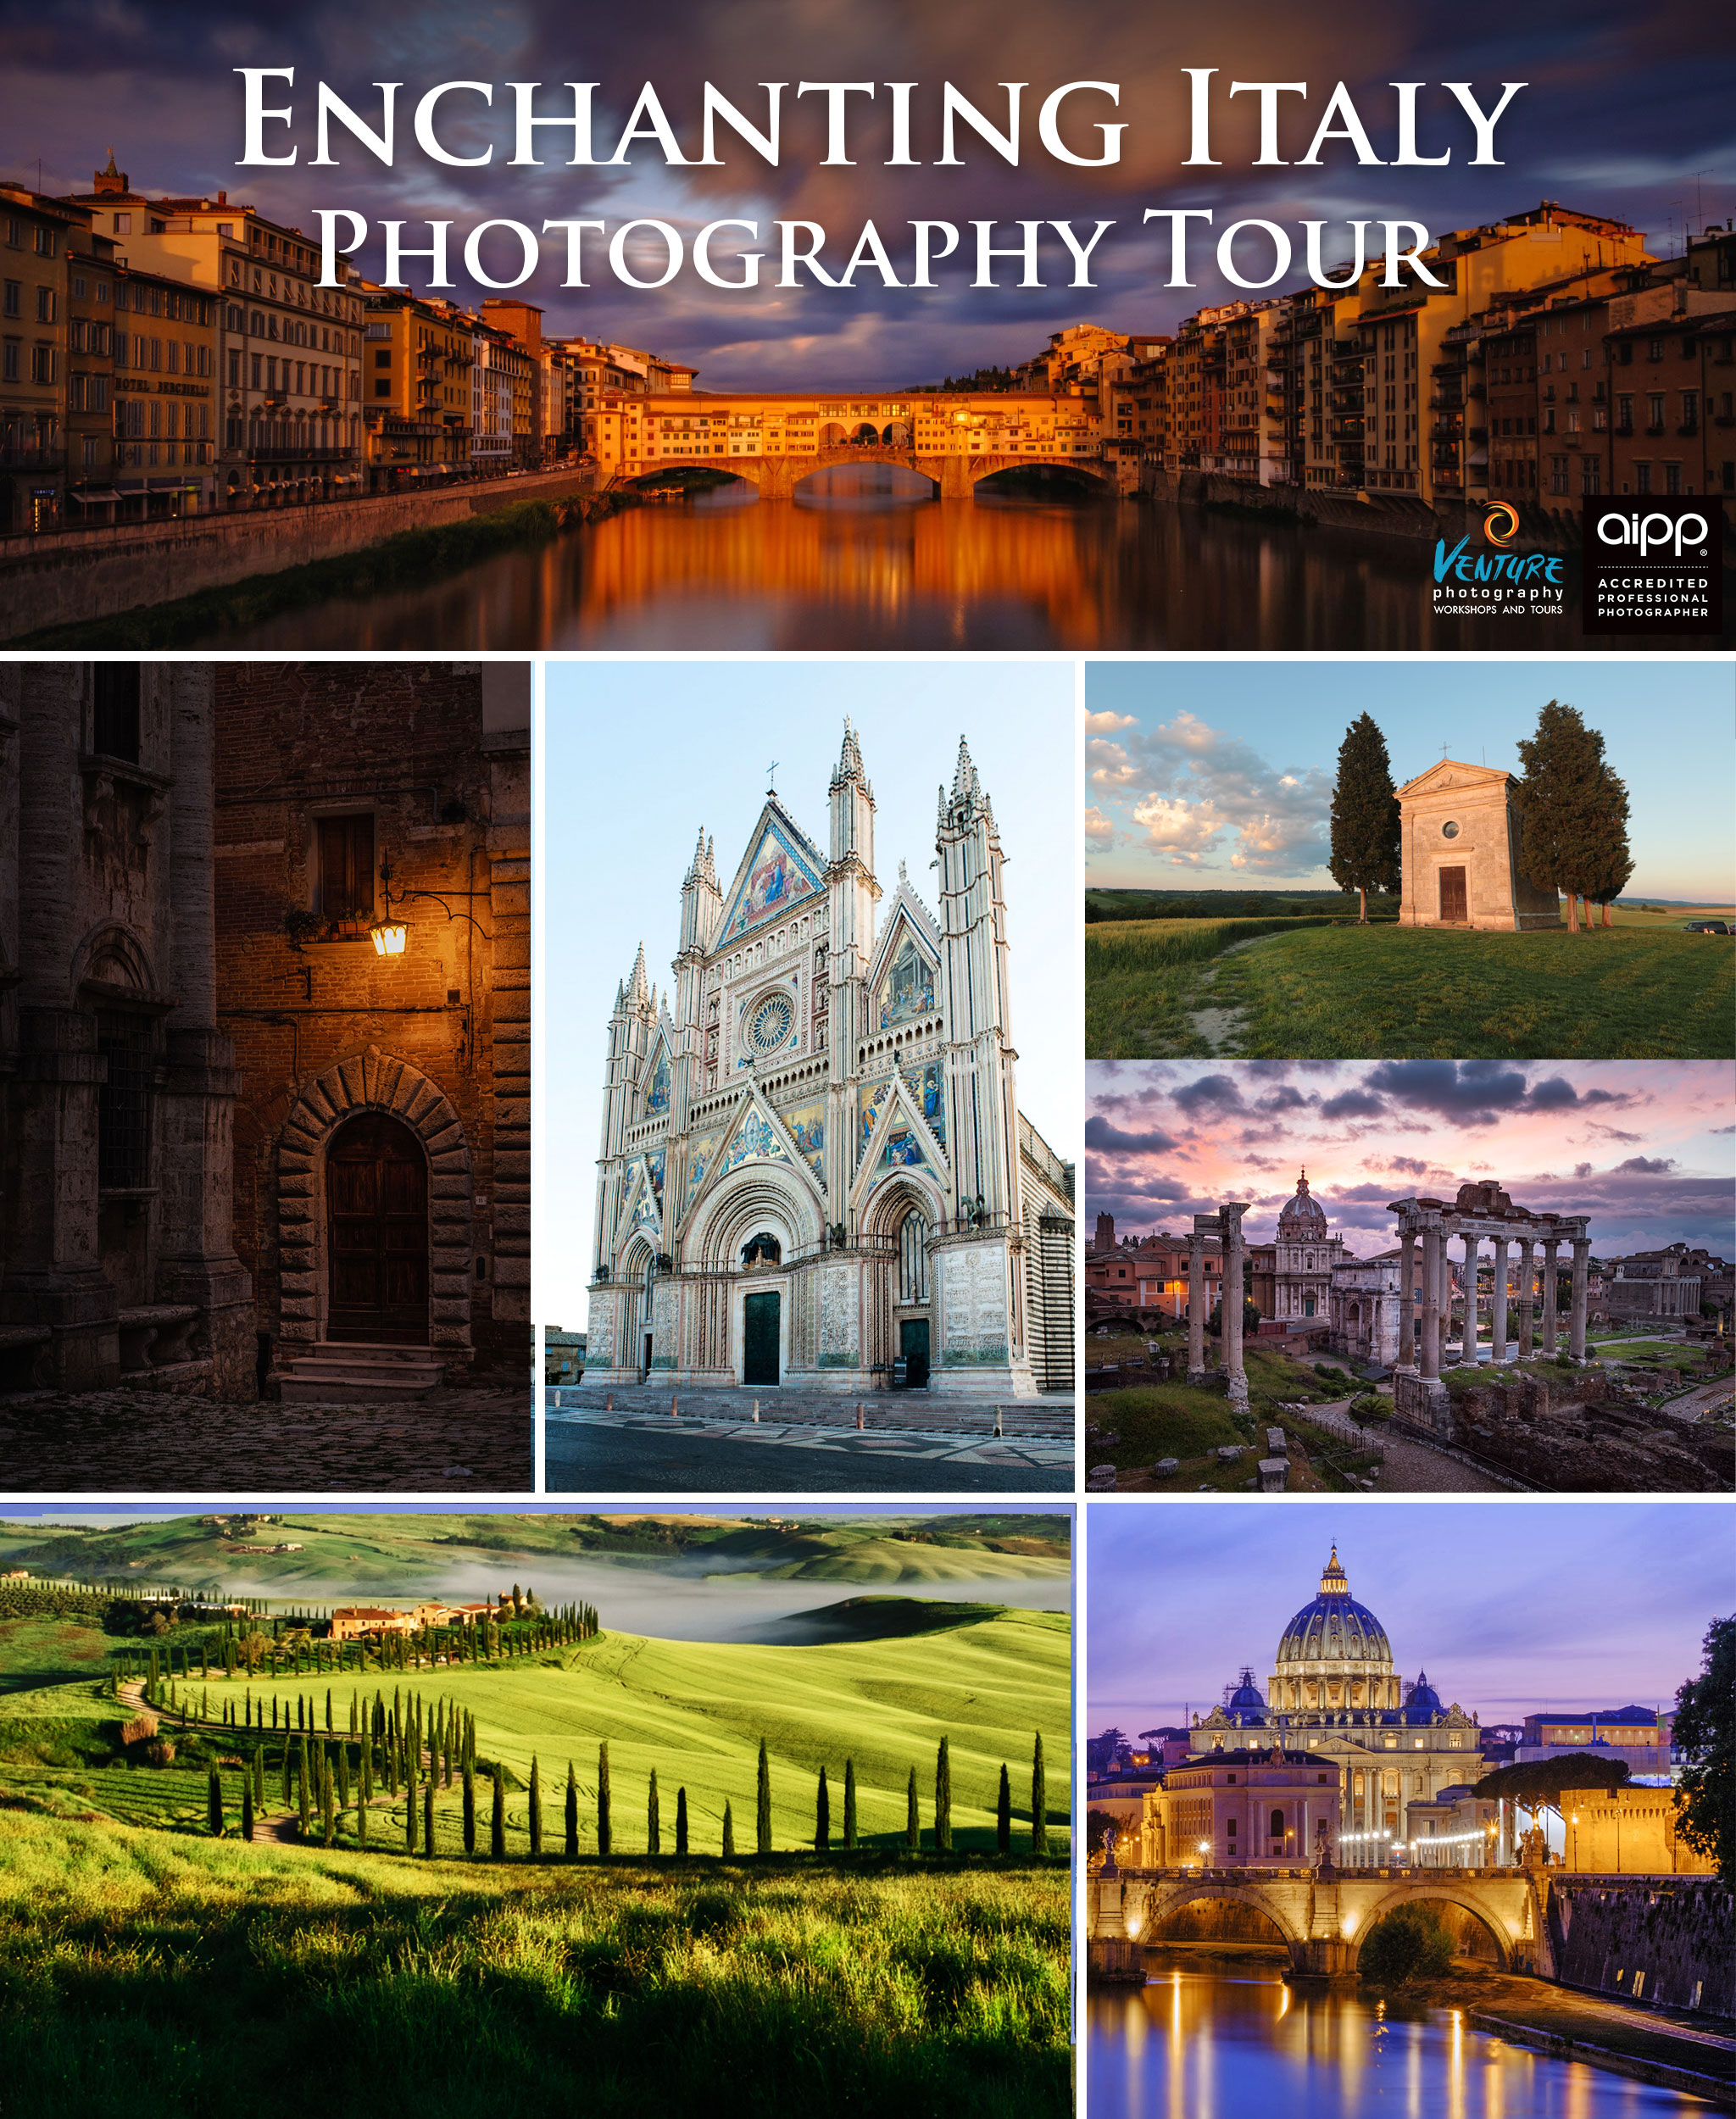 Enchanting Italy Photography Tour 2020